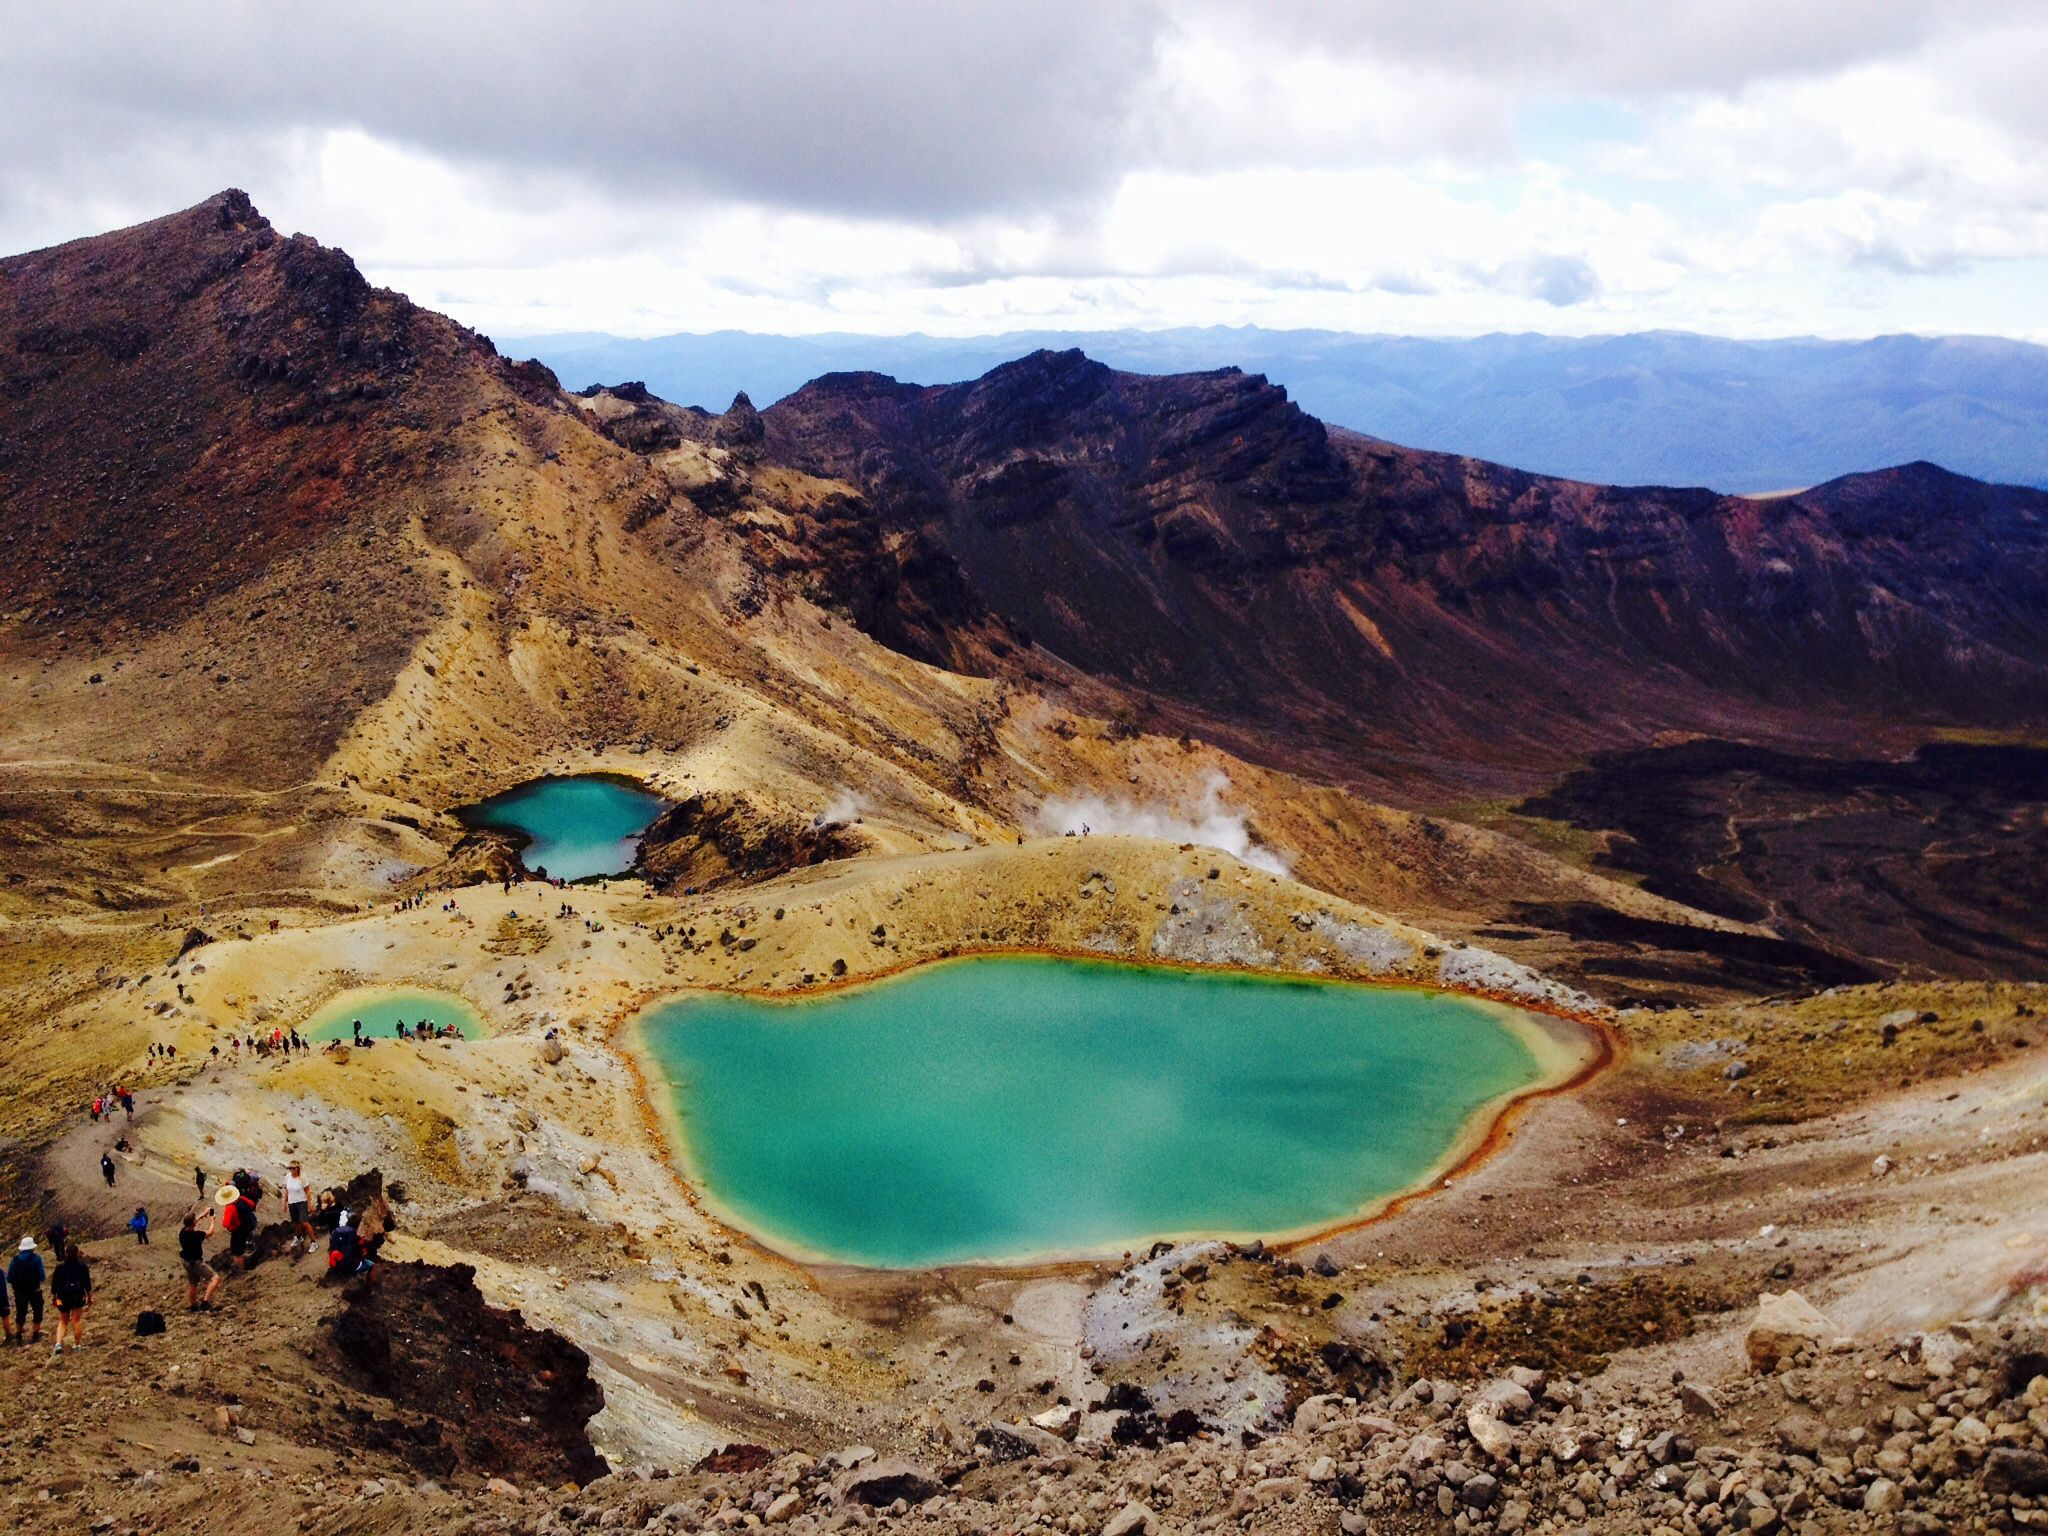 Tongariro Crossing New Zealand, on our North Island Kauri trip #KauriTrip. Another item on many travellers New Zealand (Kiwi) bucket list! #NewYearAdventure #travel #travelbucketlist